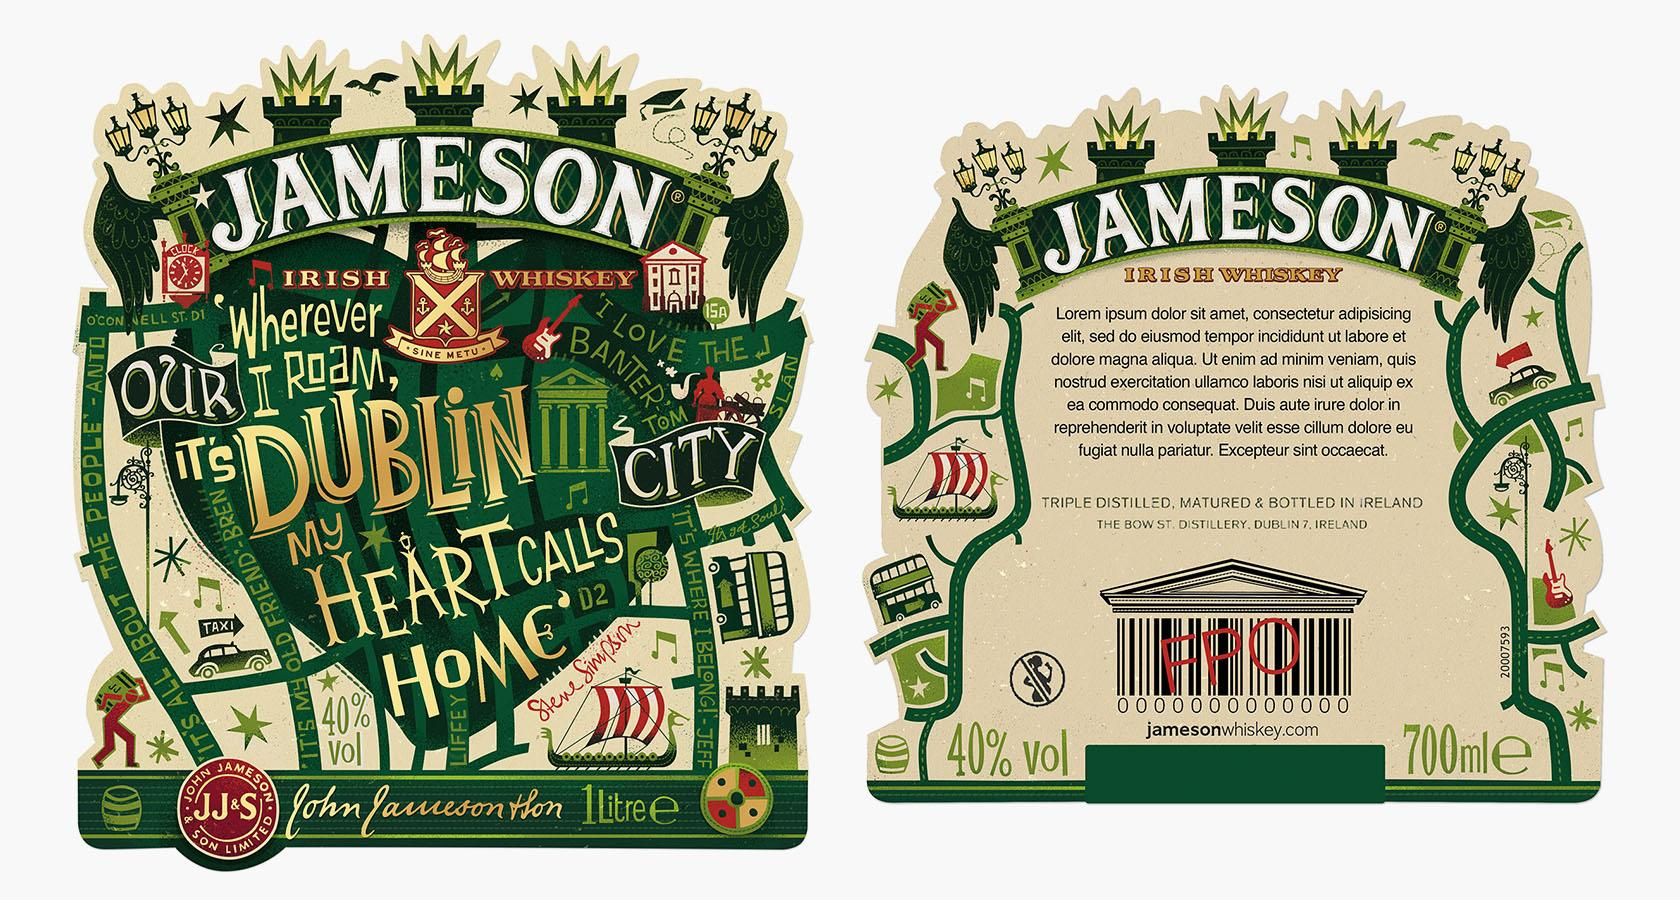 steve simpson - botella de jameson irish whiskey con lettering a mano